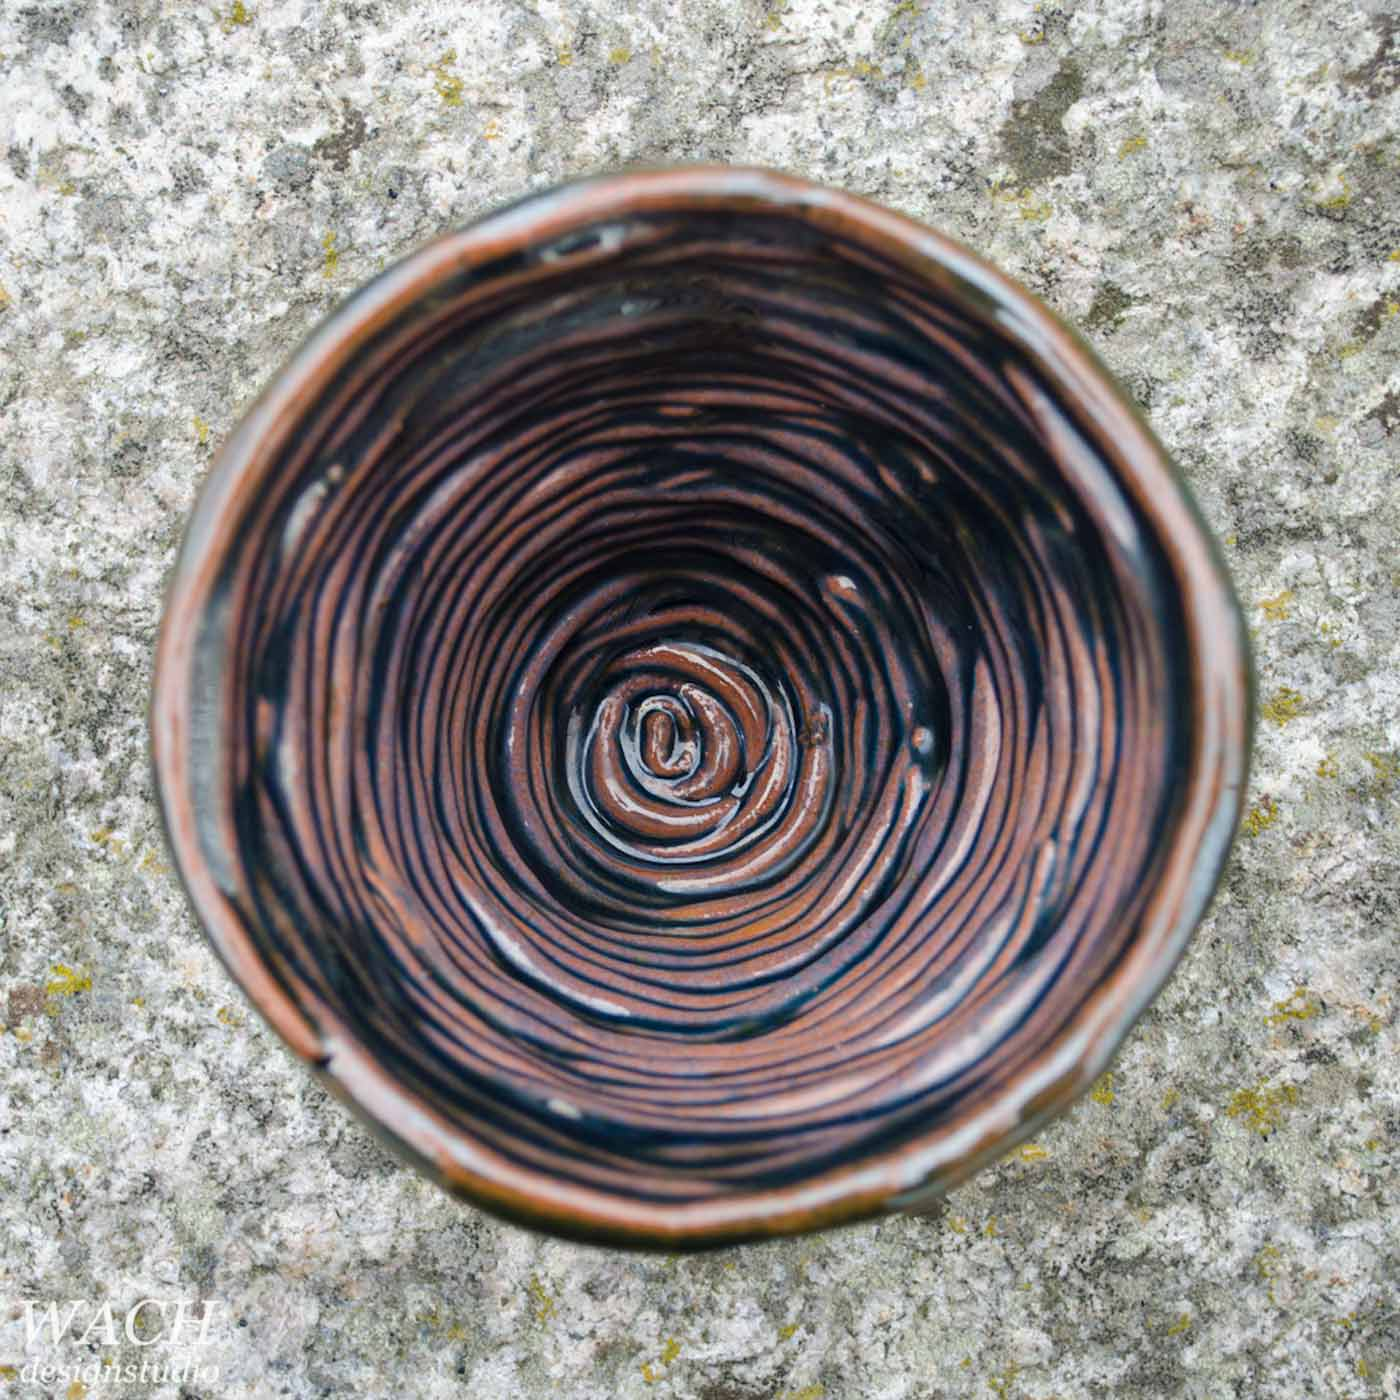 Coil Cup sitting on a stone